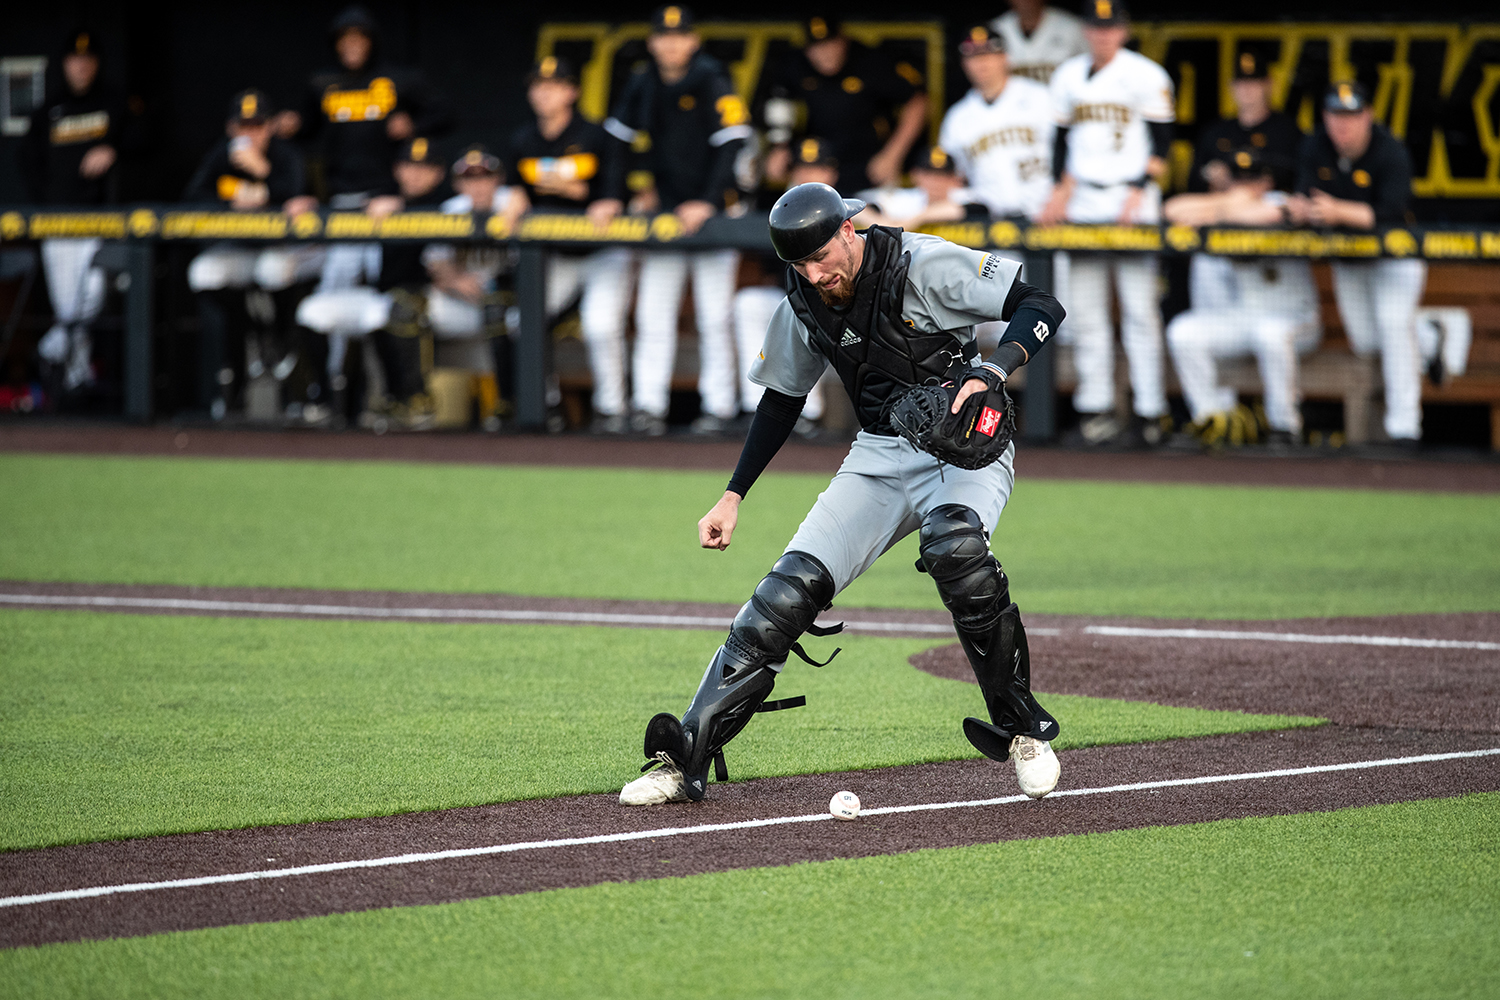 Milwaukee+catcher+Tyler+Bordner+waits+for+the+ball+to+become+a+foul+during+the+baseball+game+against+Iowa+at+Duane+Banks+Field+on+Tuesday%2C+April+23%2C+2019.+The+Hawkeyes+defeated+the+Panthers+5-4.